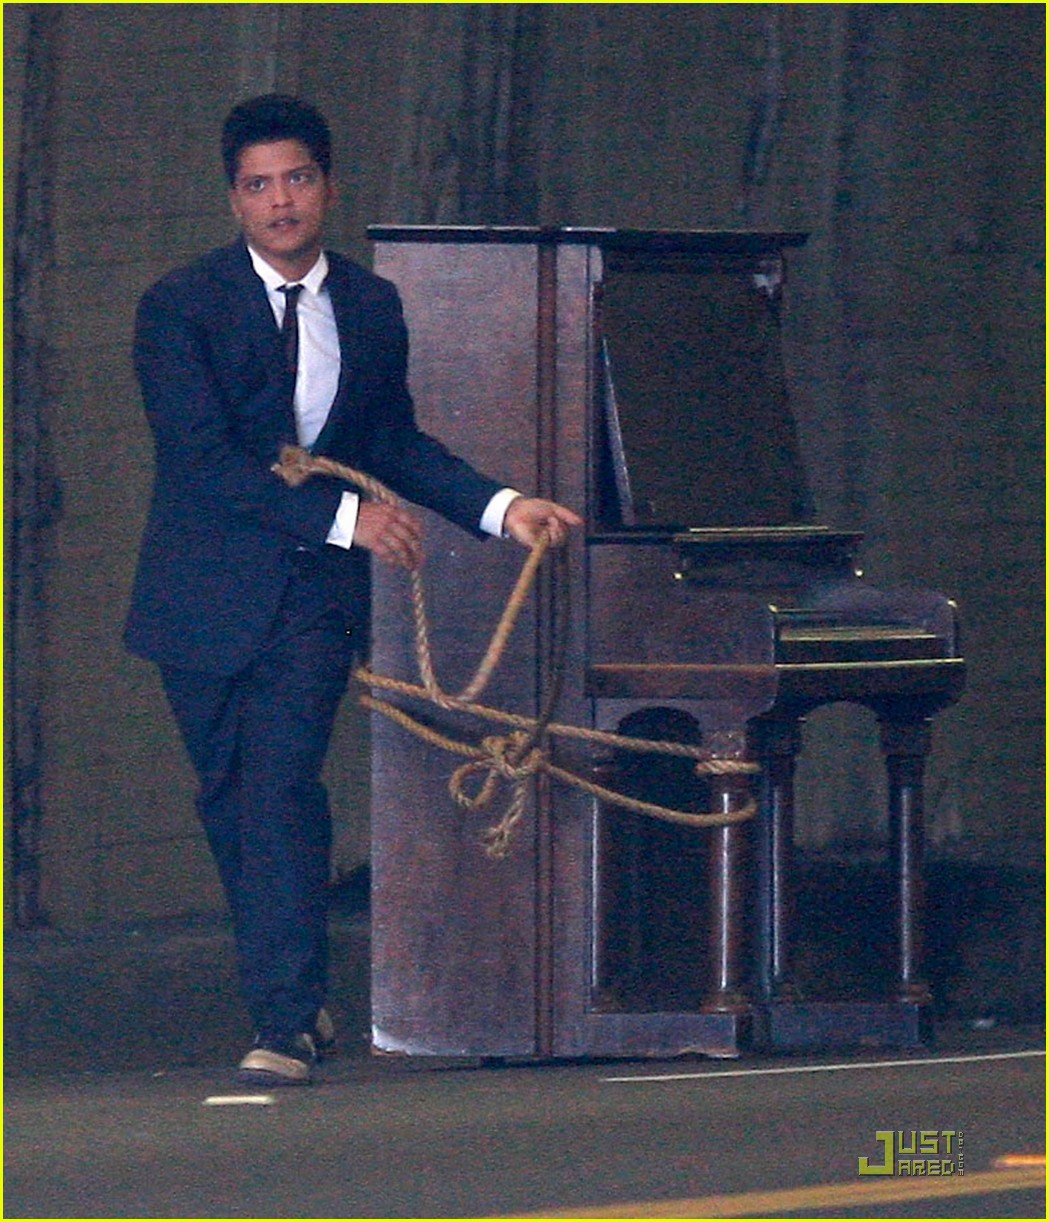 bruno mars grenade Watch the music video for bruno mars' single grenade with lyrics to sing along to.